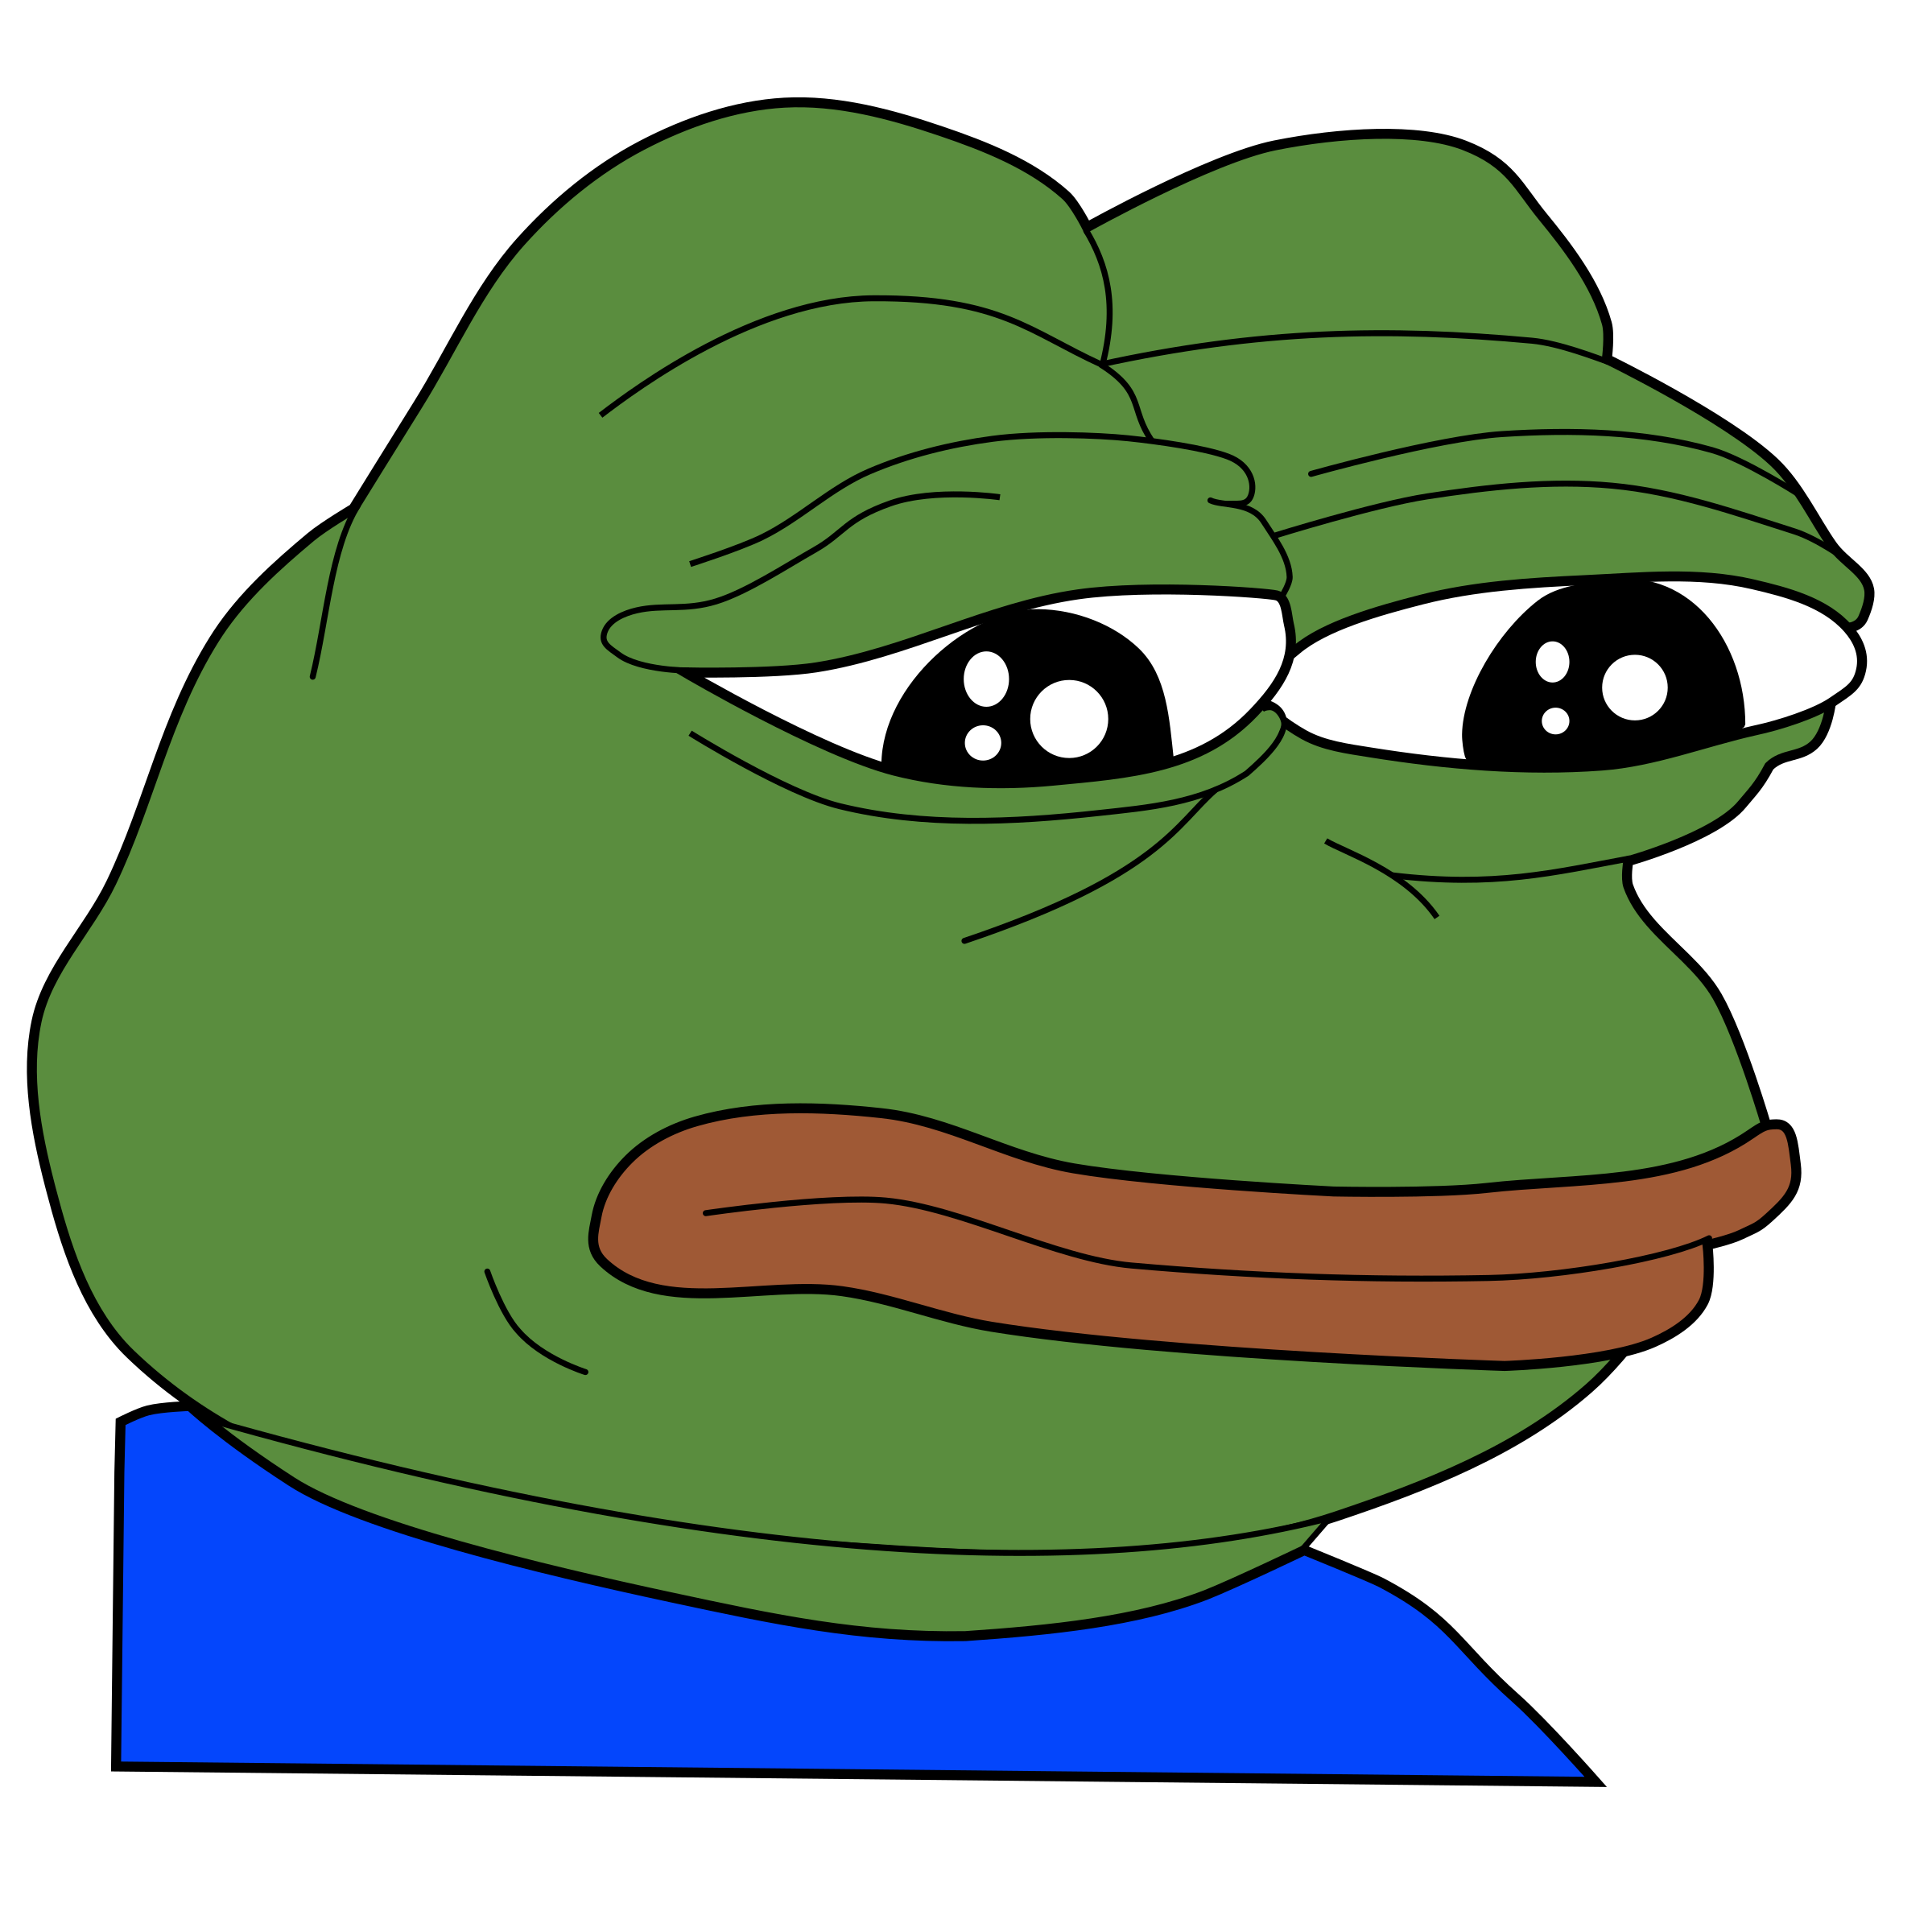 Sad frog bad meme. Pepe vector feels good man banner black and white library